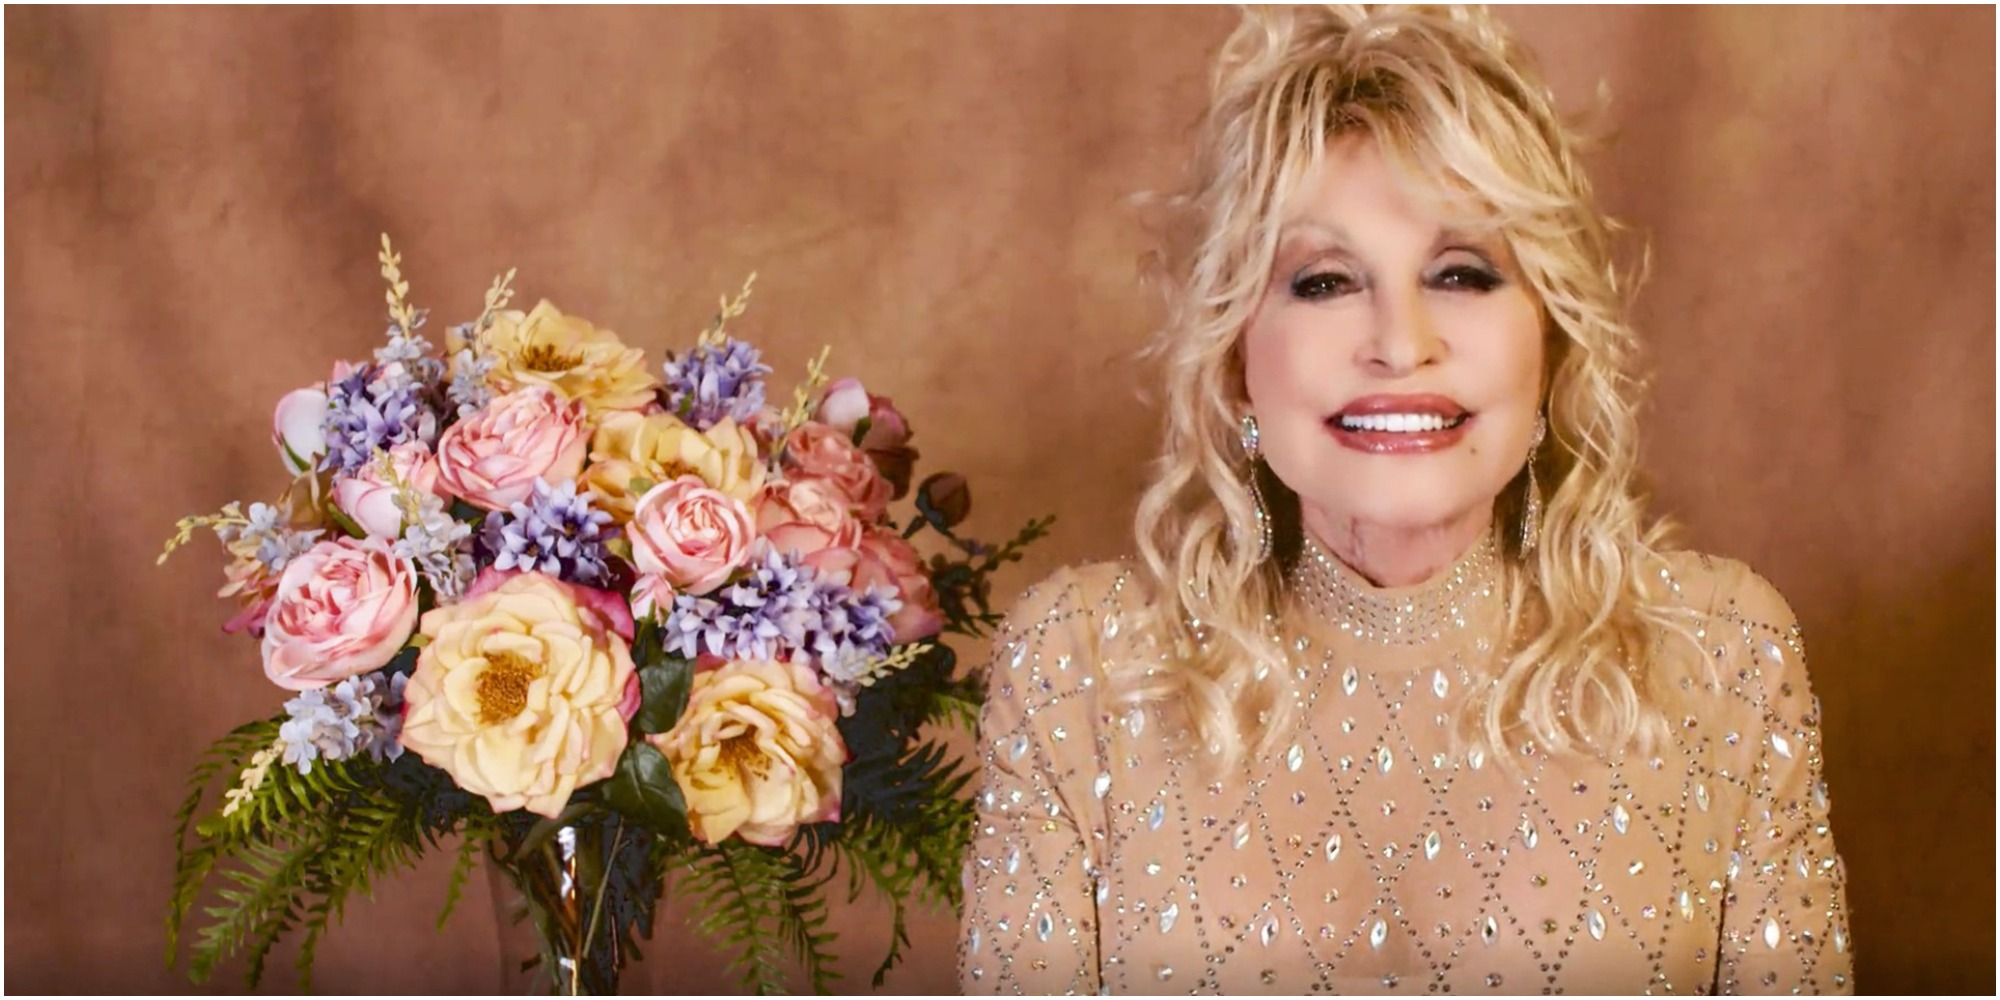 Fans of Dolly Parton will have to wait until the end of the 2021 Emmy Awards to see her as a presenter.